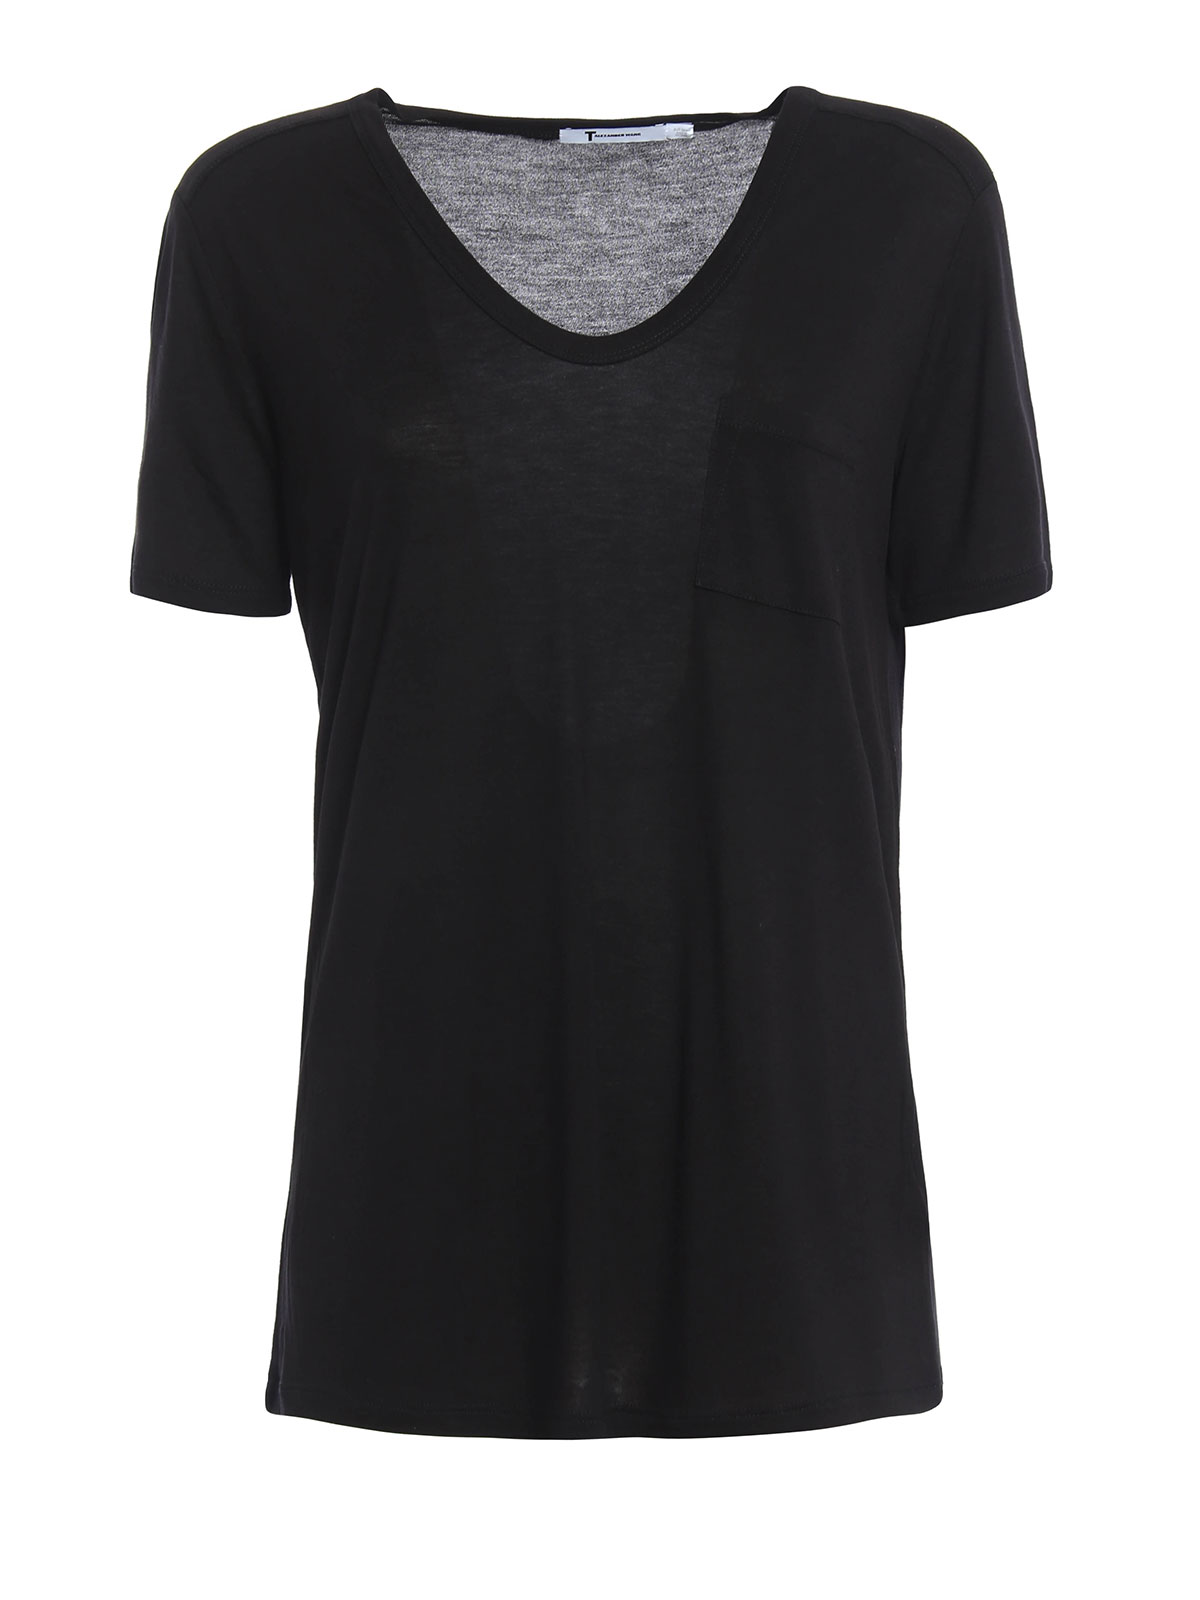 Classic t shirt by t by alexander wang t shirts ikrix for Alexander wang t shirts